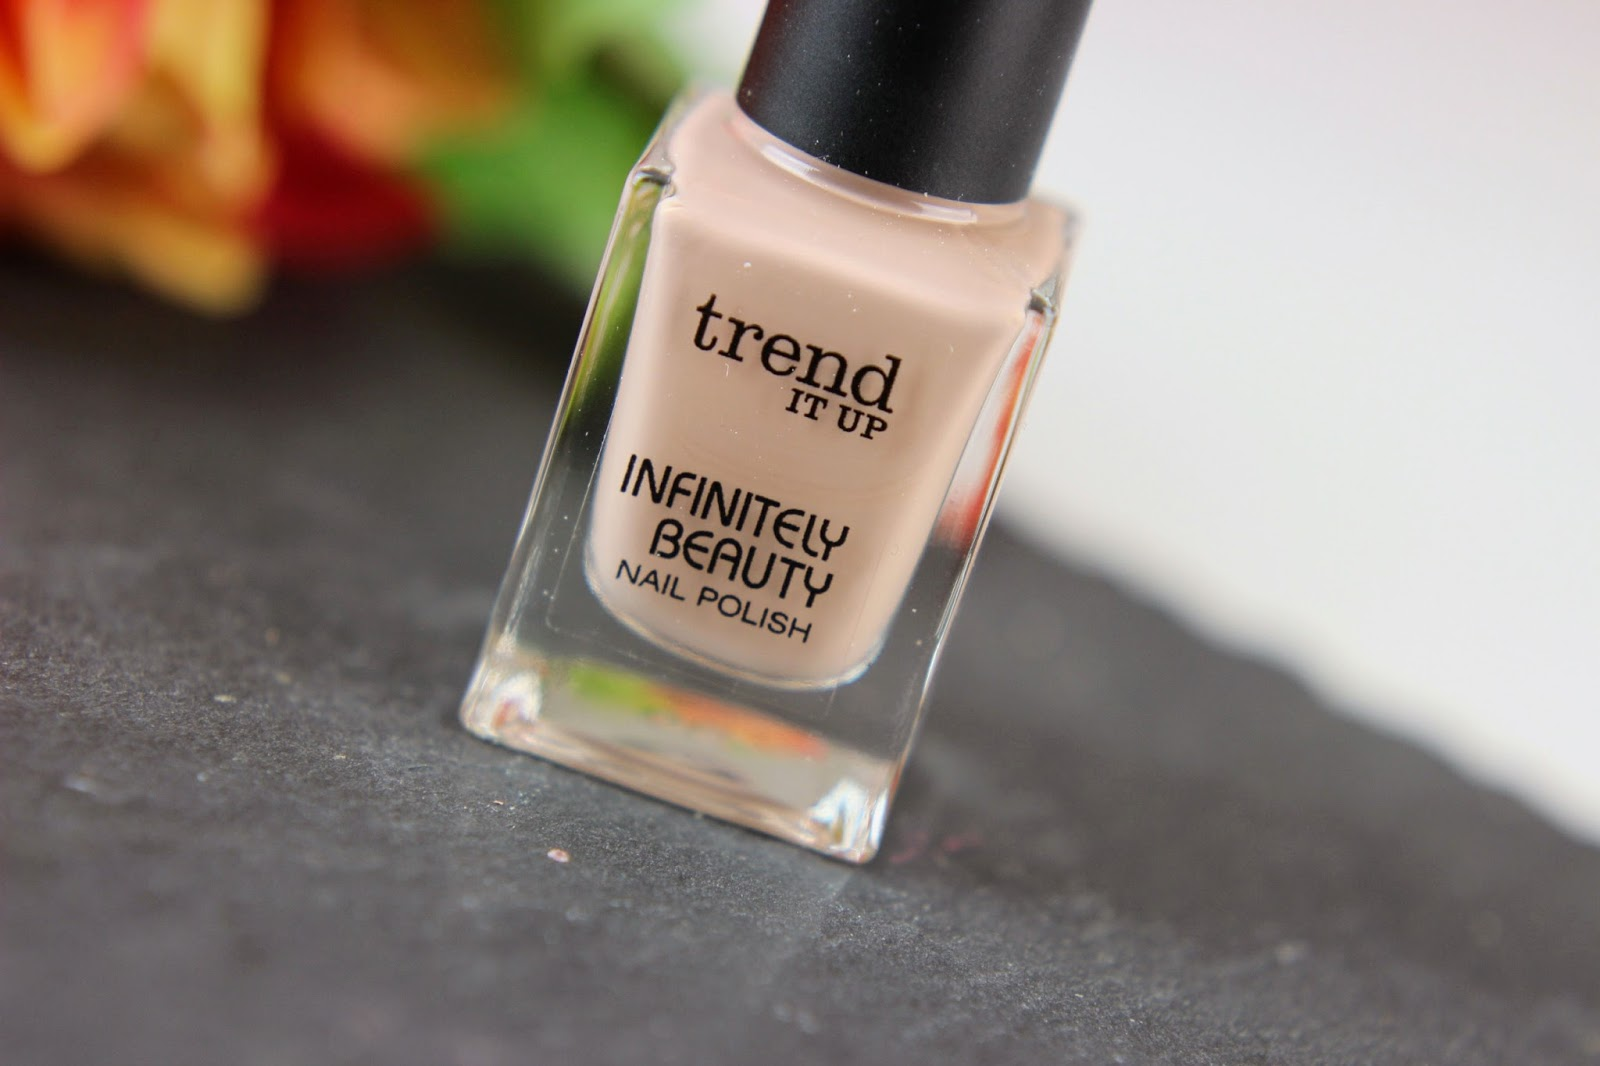 dm deutschland, drogerie, Infinitely Beauty, le, limited edition, nagellack, review, swatches, tiu, tragebilder, trend it up, blush, lidschatten, lippenstift, nude, eye shadow, lipstick & liner, orange, grau, nailpolish,